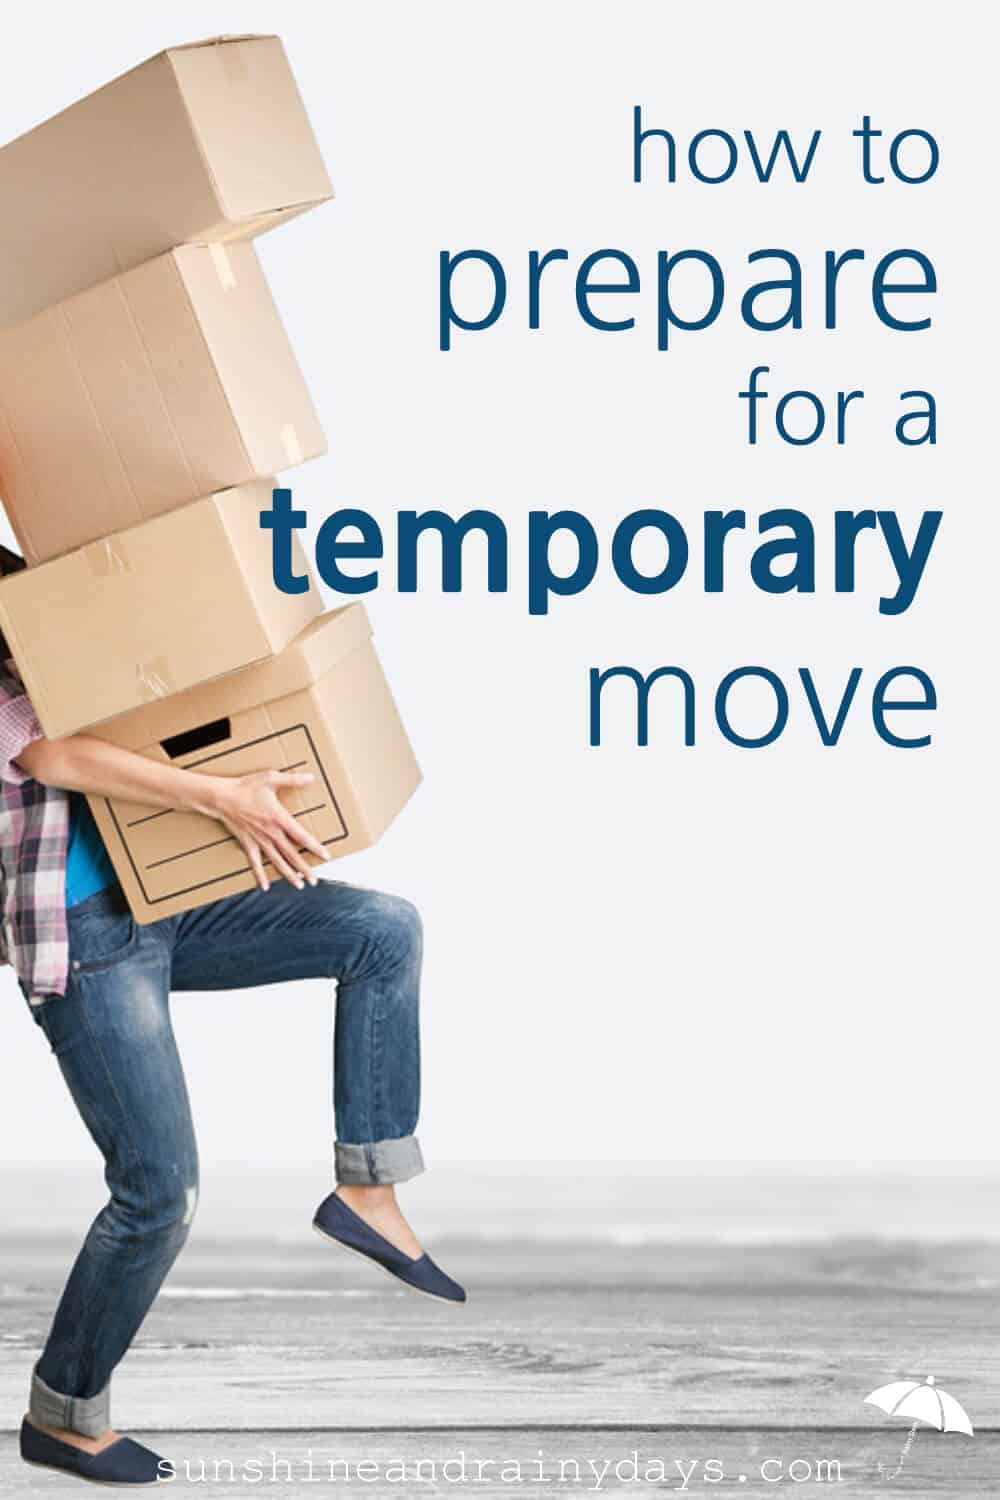 Have you found yourself in the situation where you must prepare for a temporary move?